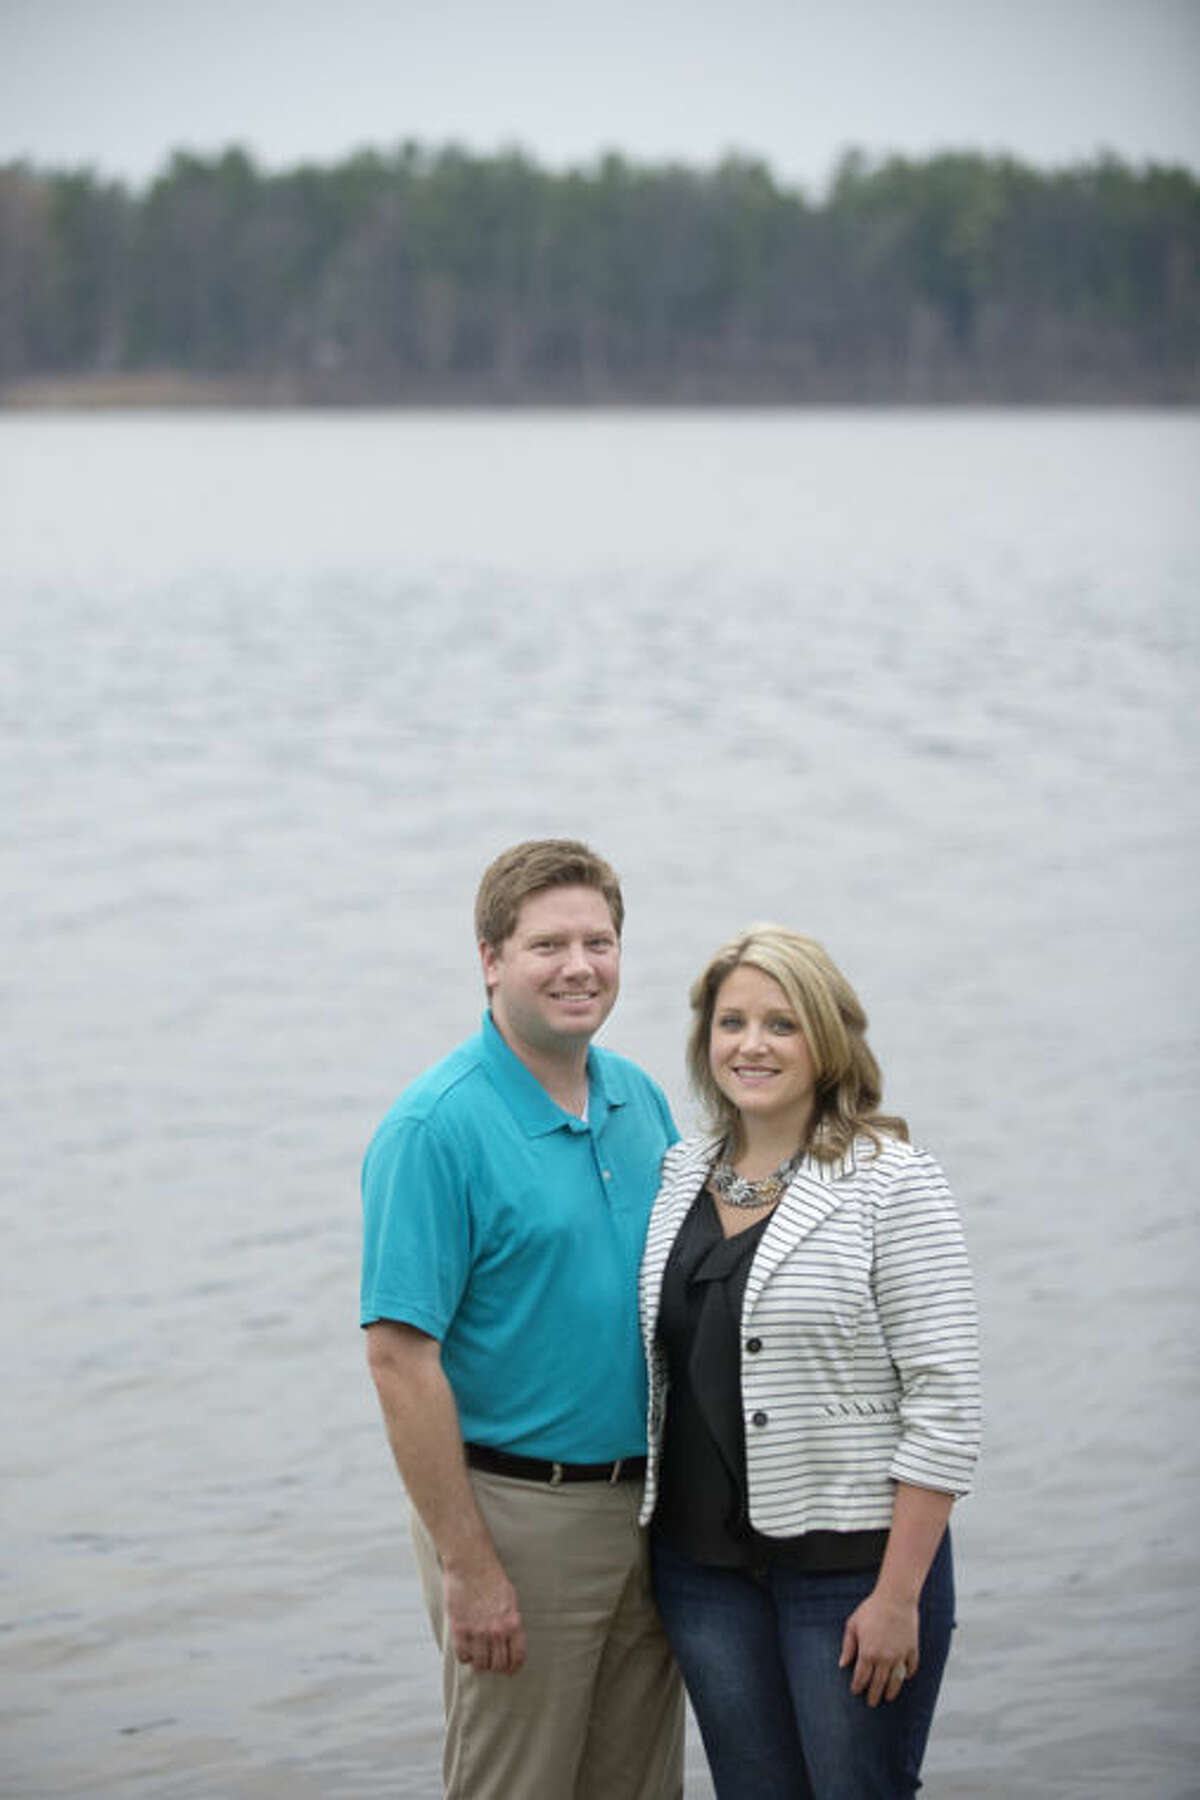 """Mike & Danielle Weinert, from Florida, looking to buy a house on waterfront property, will be featured Wednesday on HGTV's """"House Hunters."""" The show follows the couple and Realtor Denise Fladeboe on the search and ends with the purchase of one of the houses toured."""